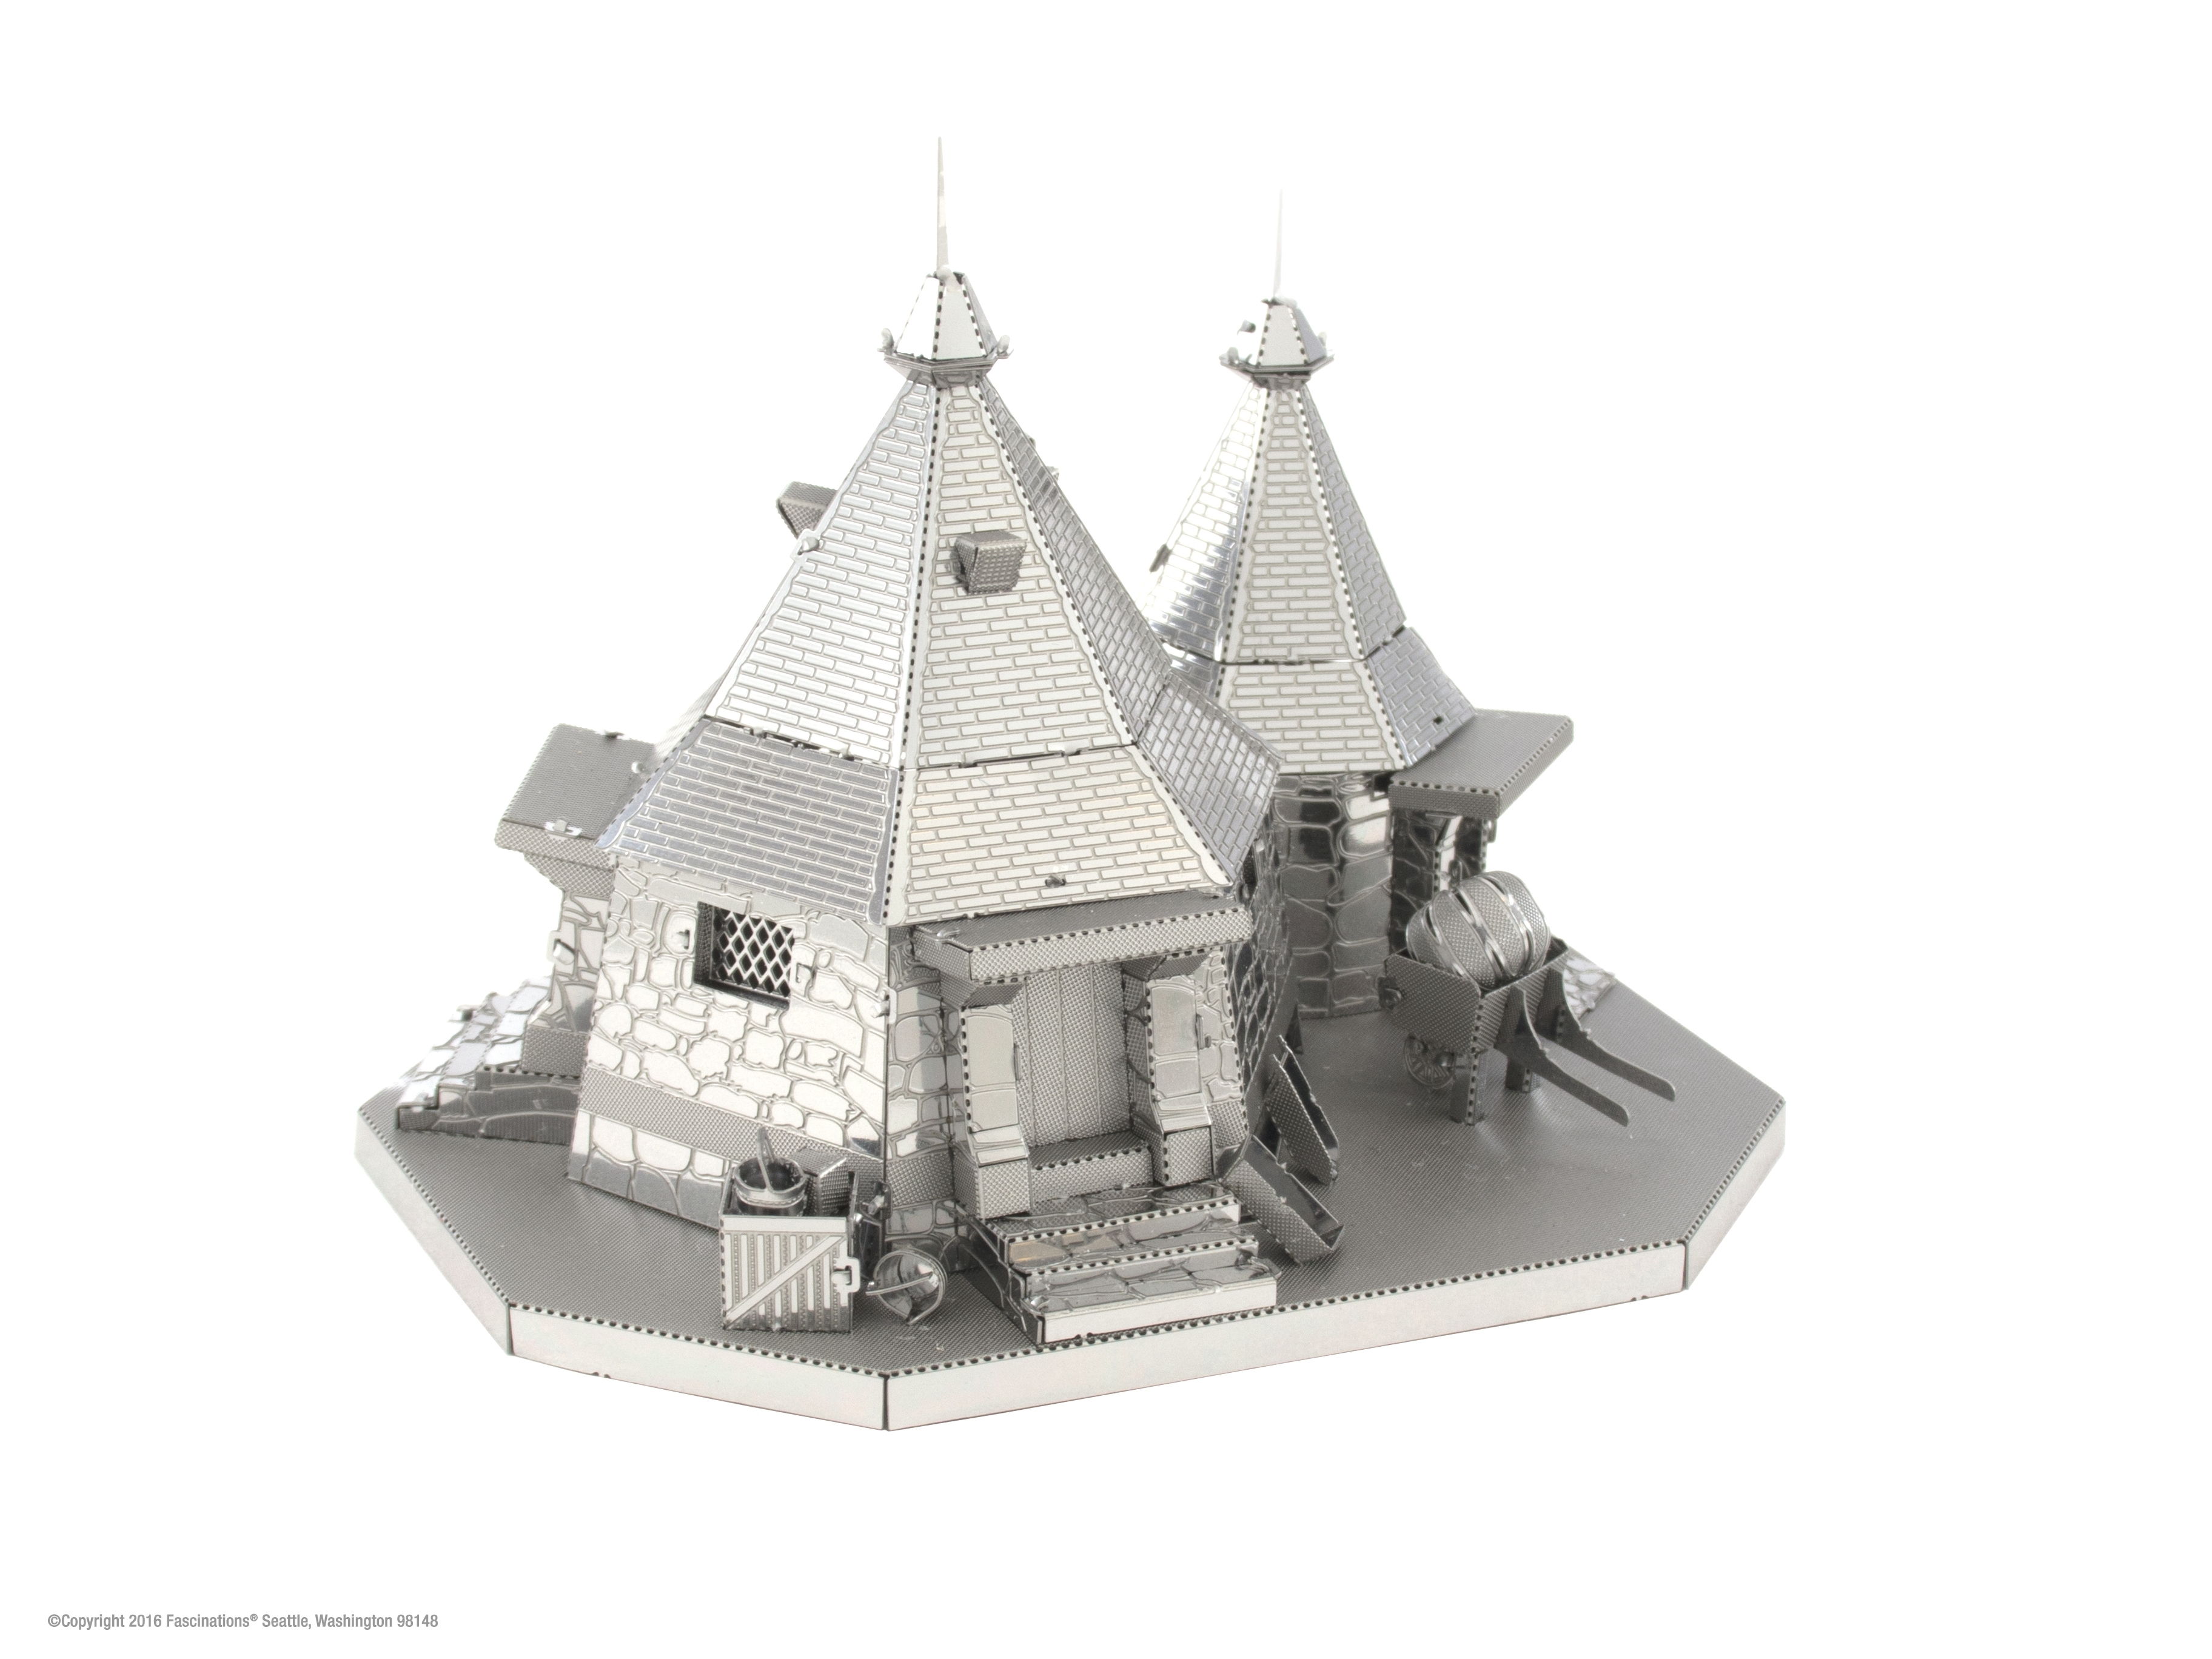 Fascinations Metal Earth 3D Metal Model Kit Harry Potter Rubeus Hagrid Hut by Fascinations